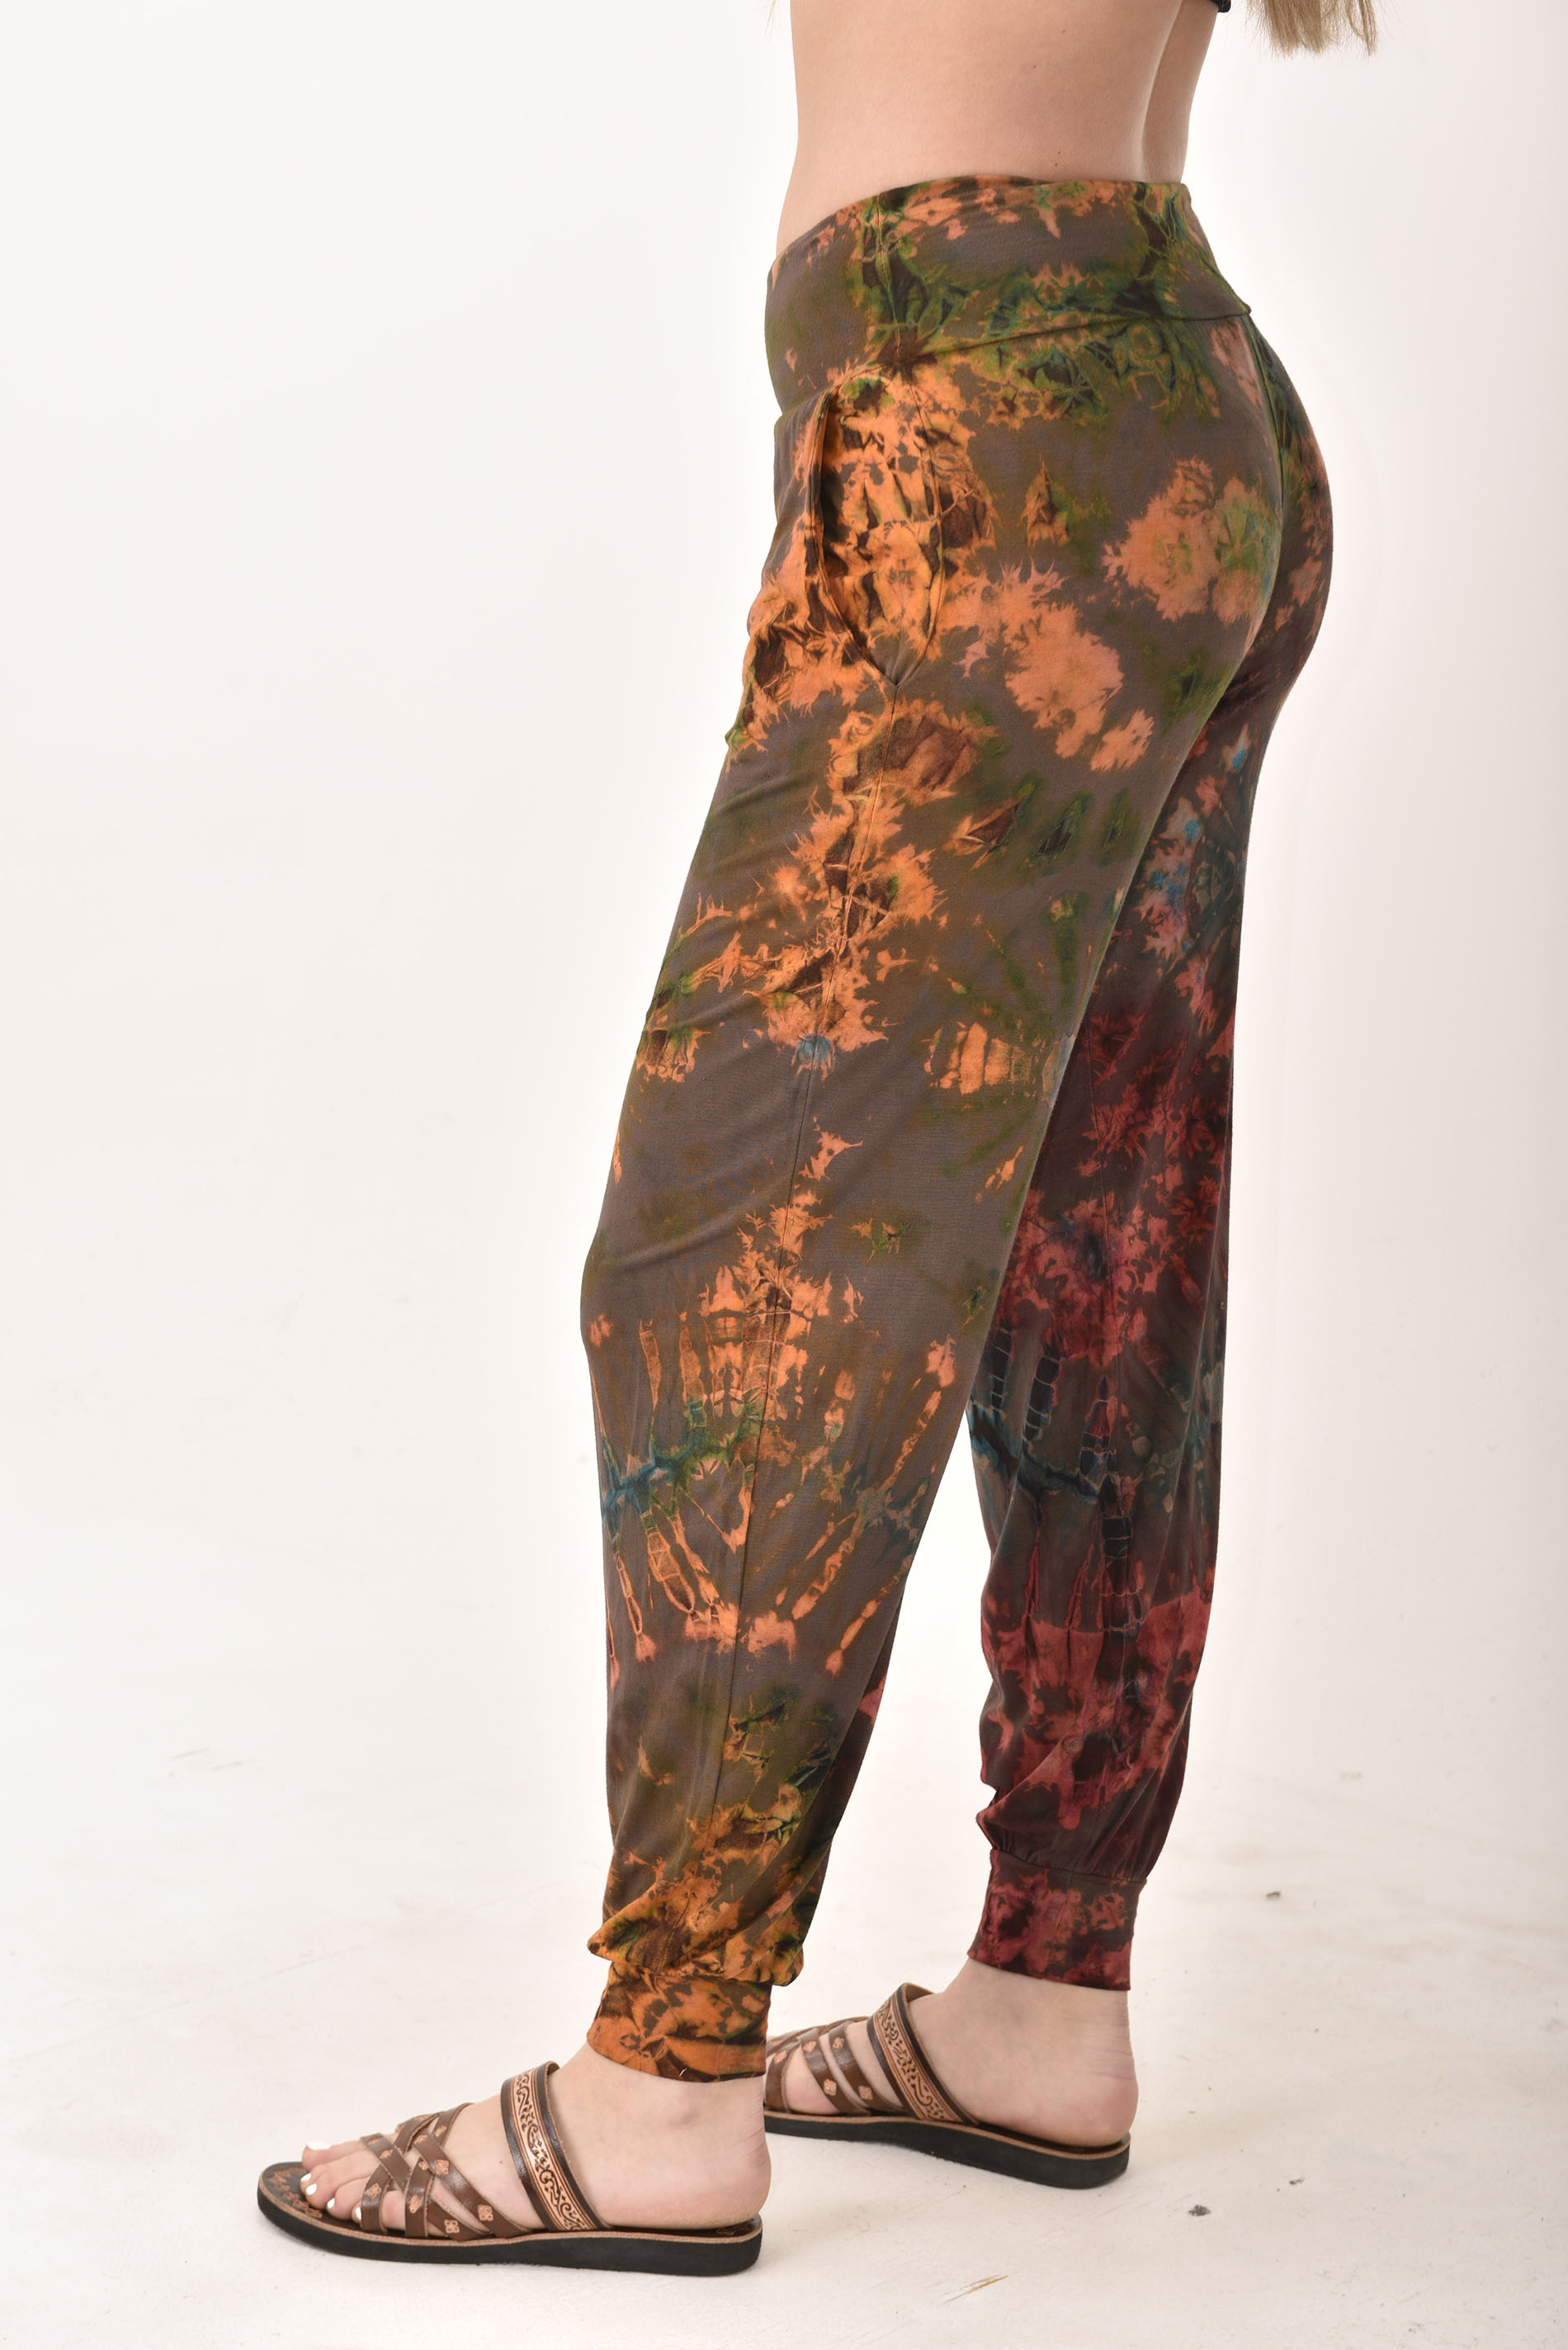 Hand Painted Tie Dye deluxe Harem Pants on higher quality Rayon/Spandex Blend, Rust